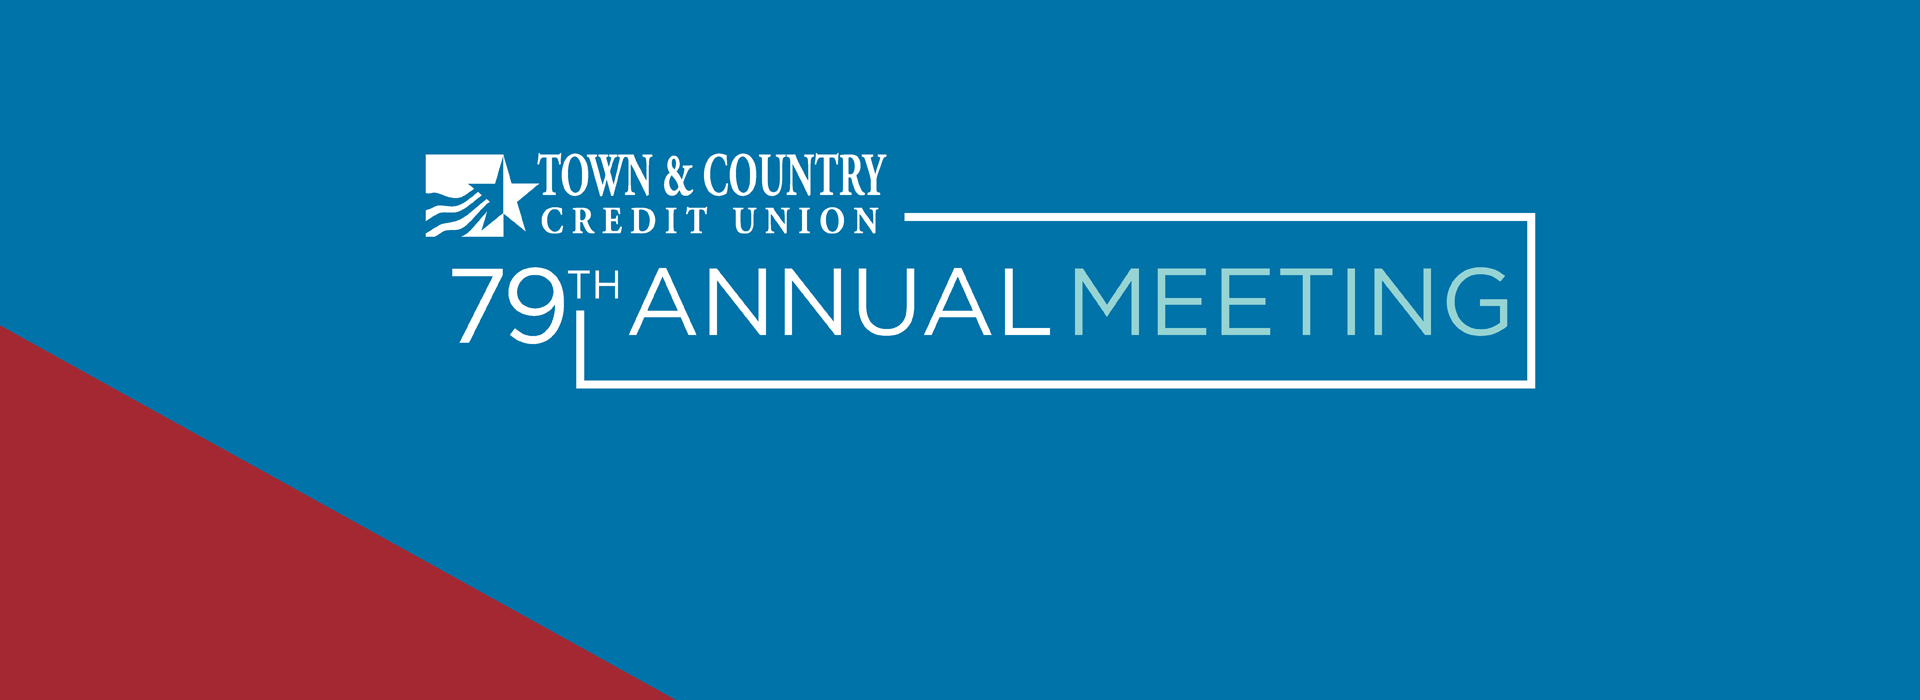 Annual Meeting, 79th Anniversary, Happy Birthday to Us, Town & Country Credit Union